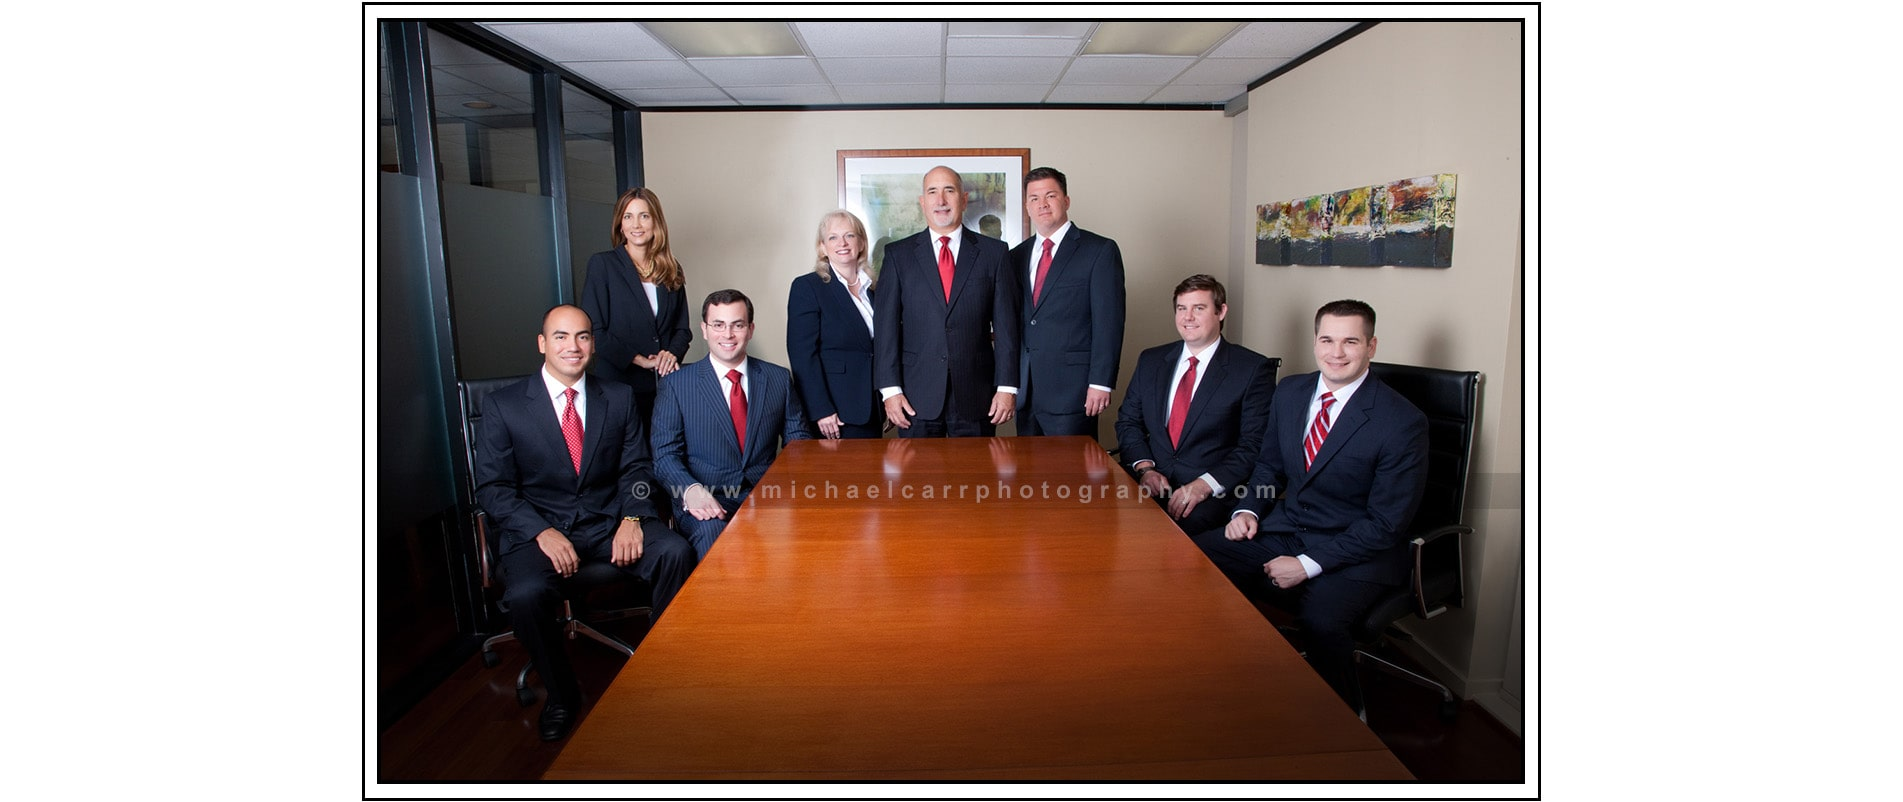 Group Business Portraits in Houston